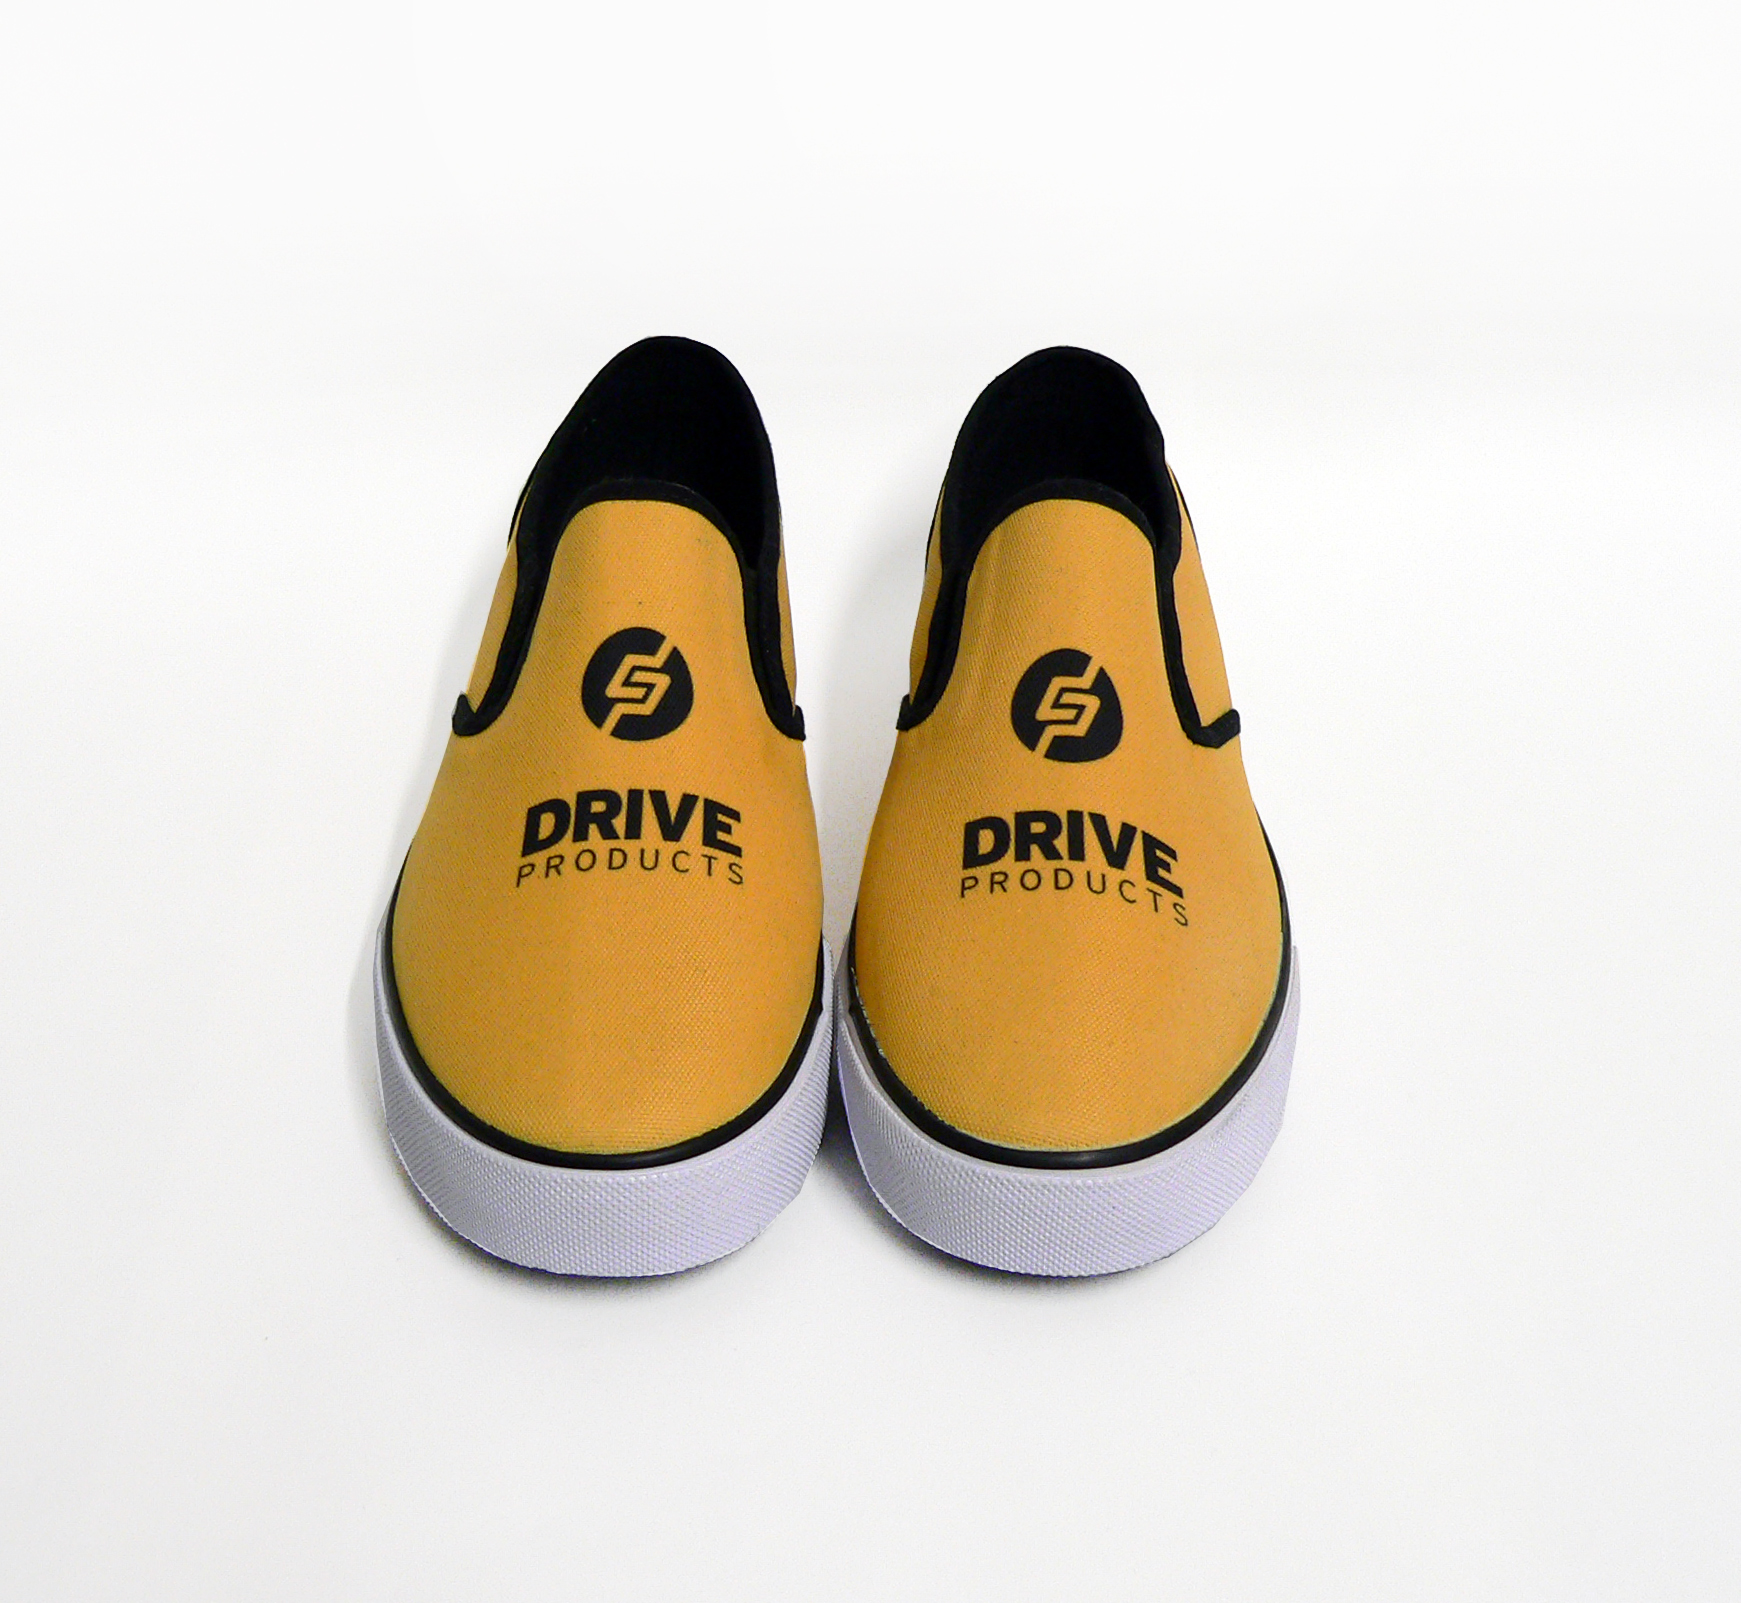 drive-products-shoes